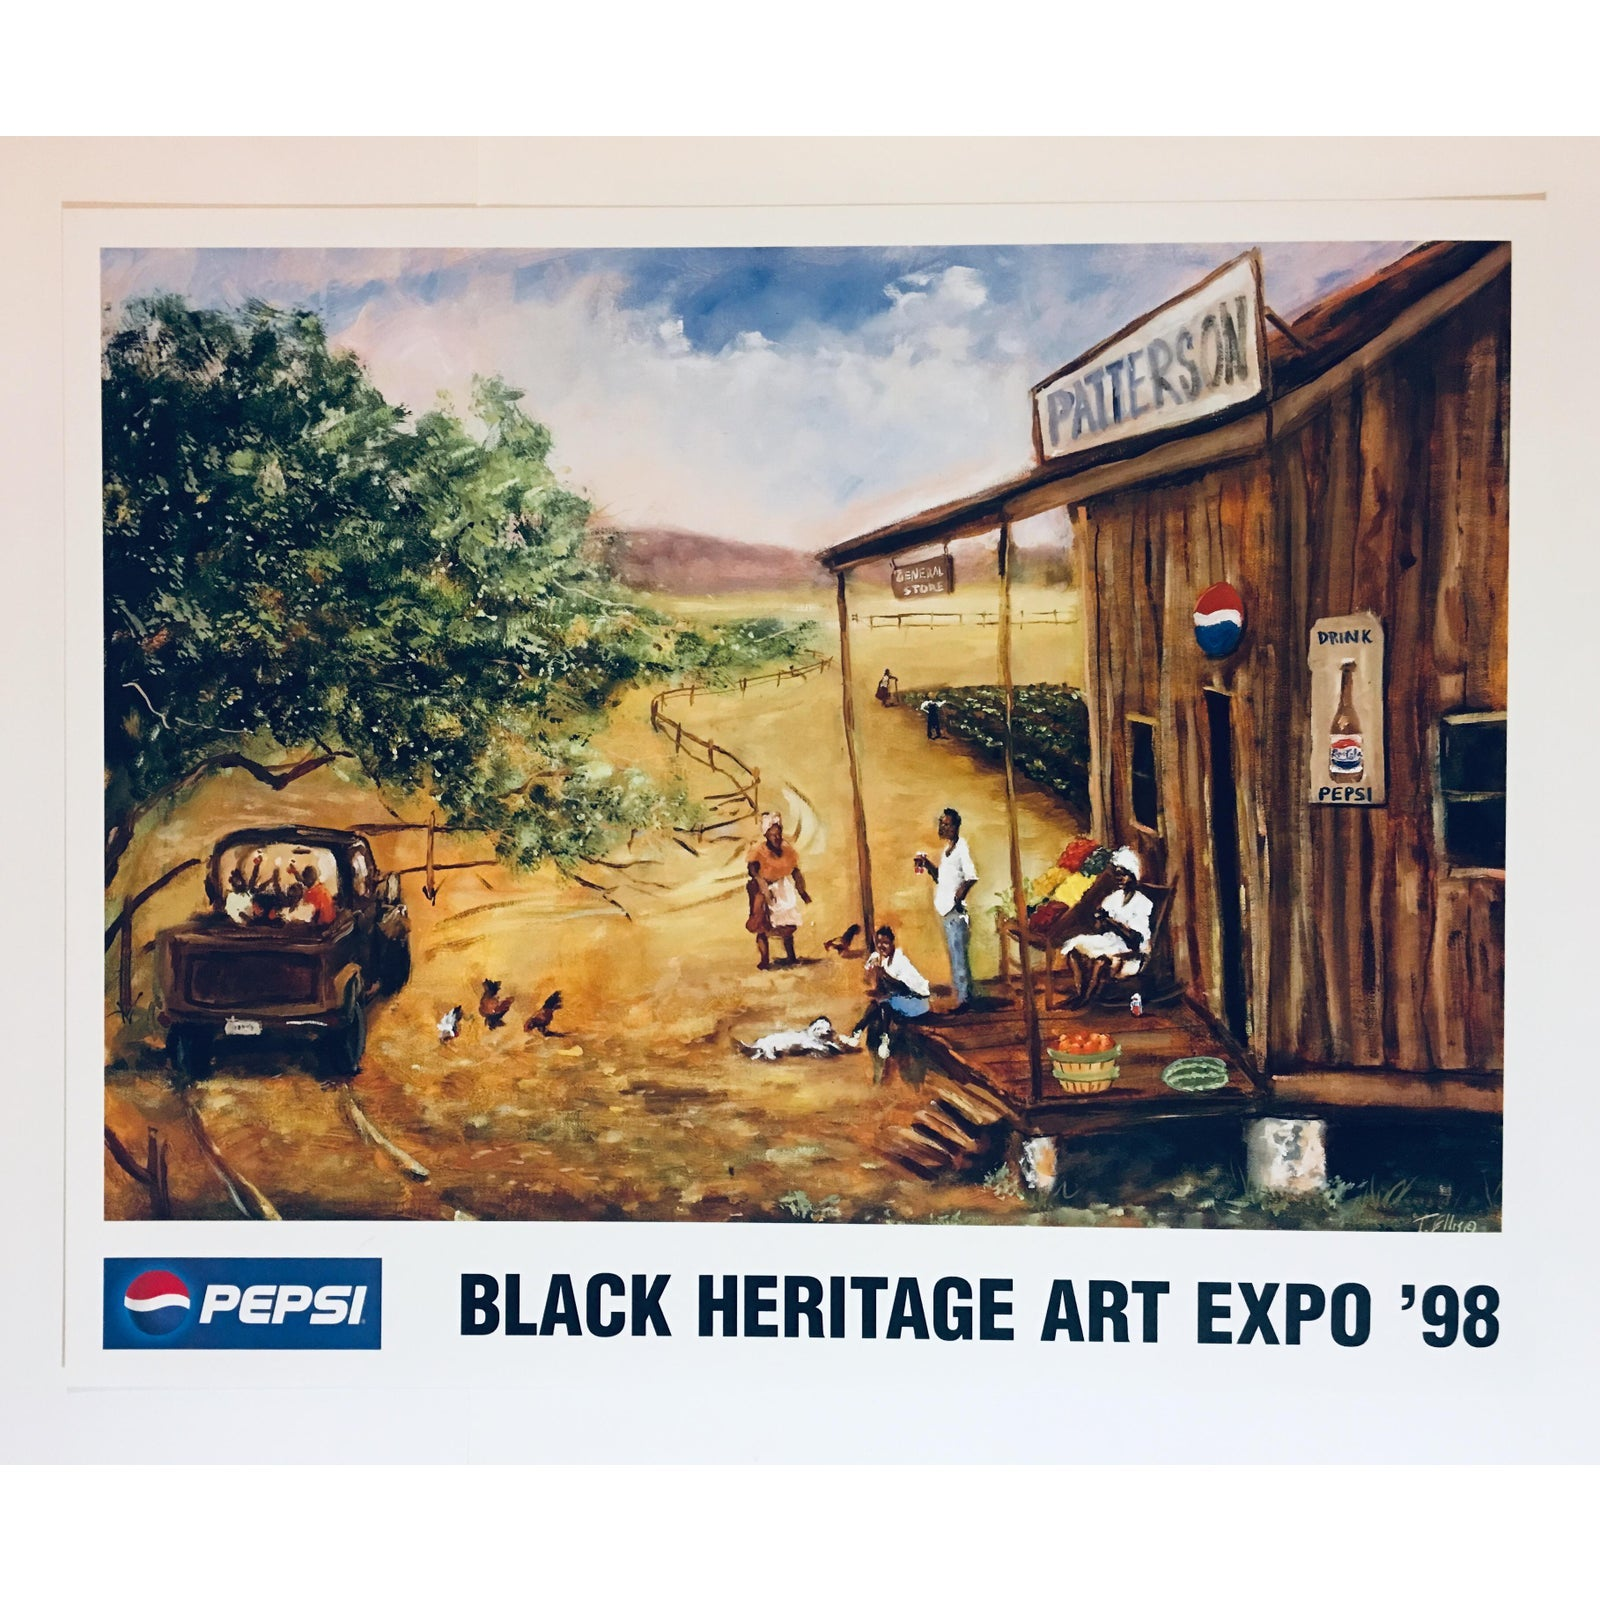 "T Ellis ""Patterson General Store"" Pepsi Theme Poster Print for the 1998 Black Heritage Art Expo"